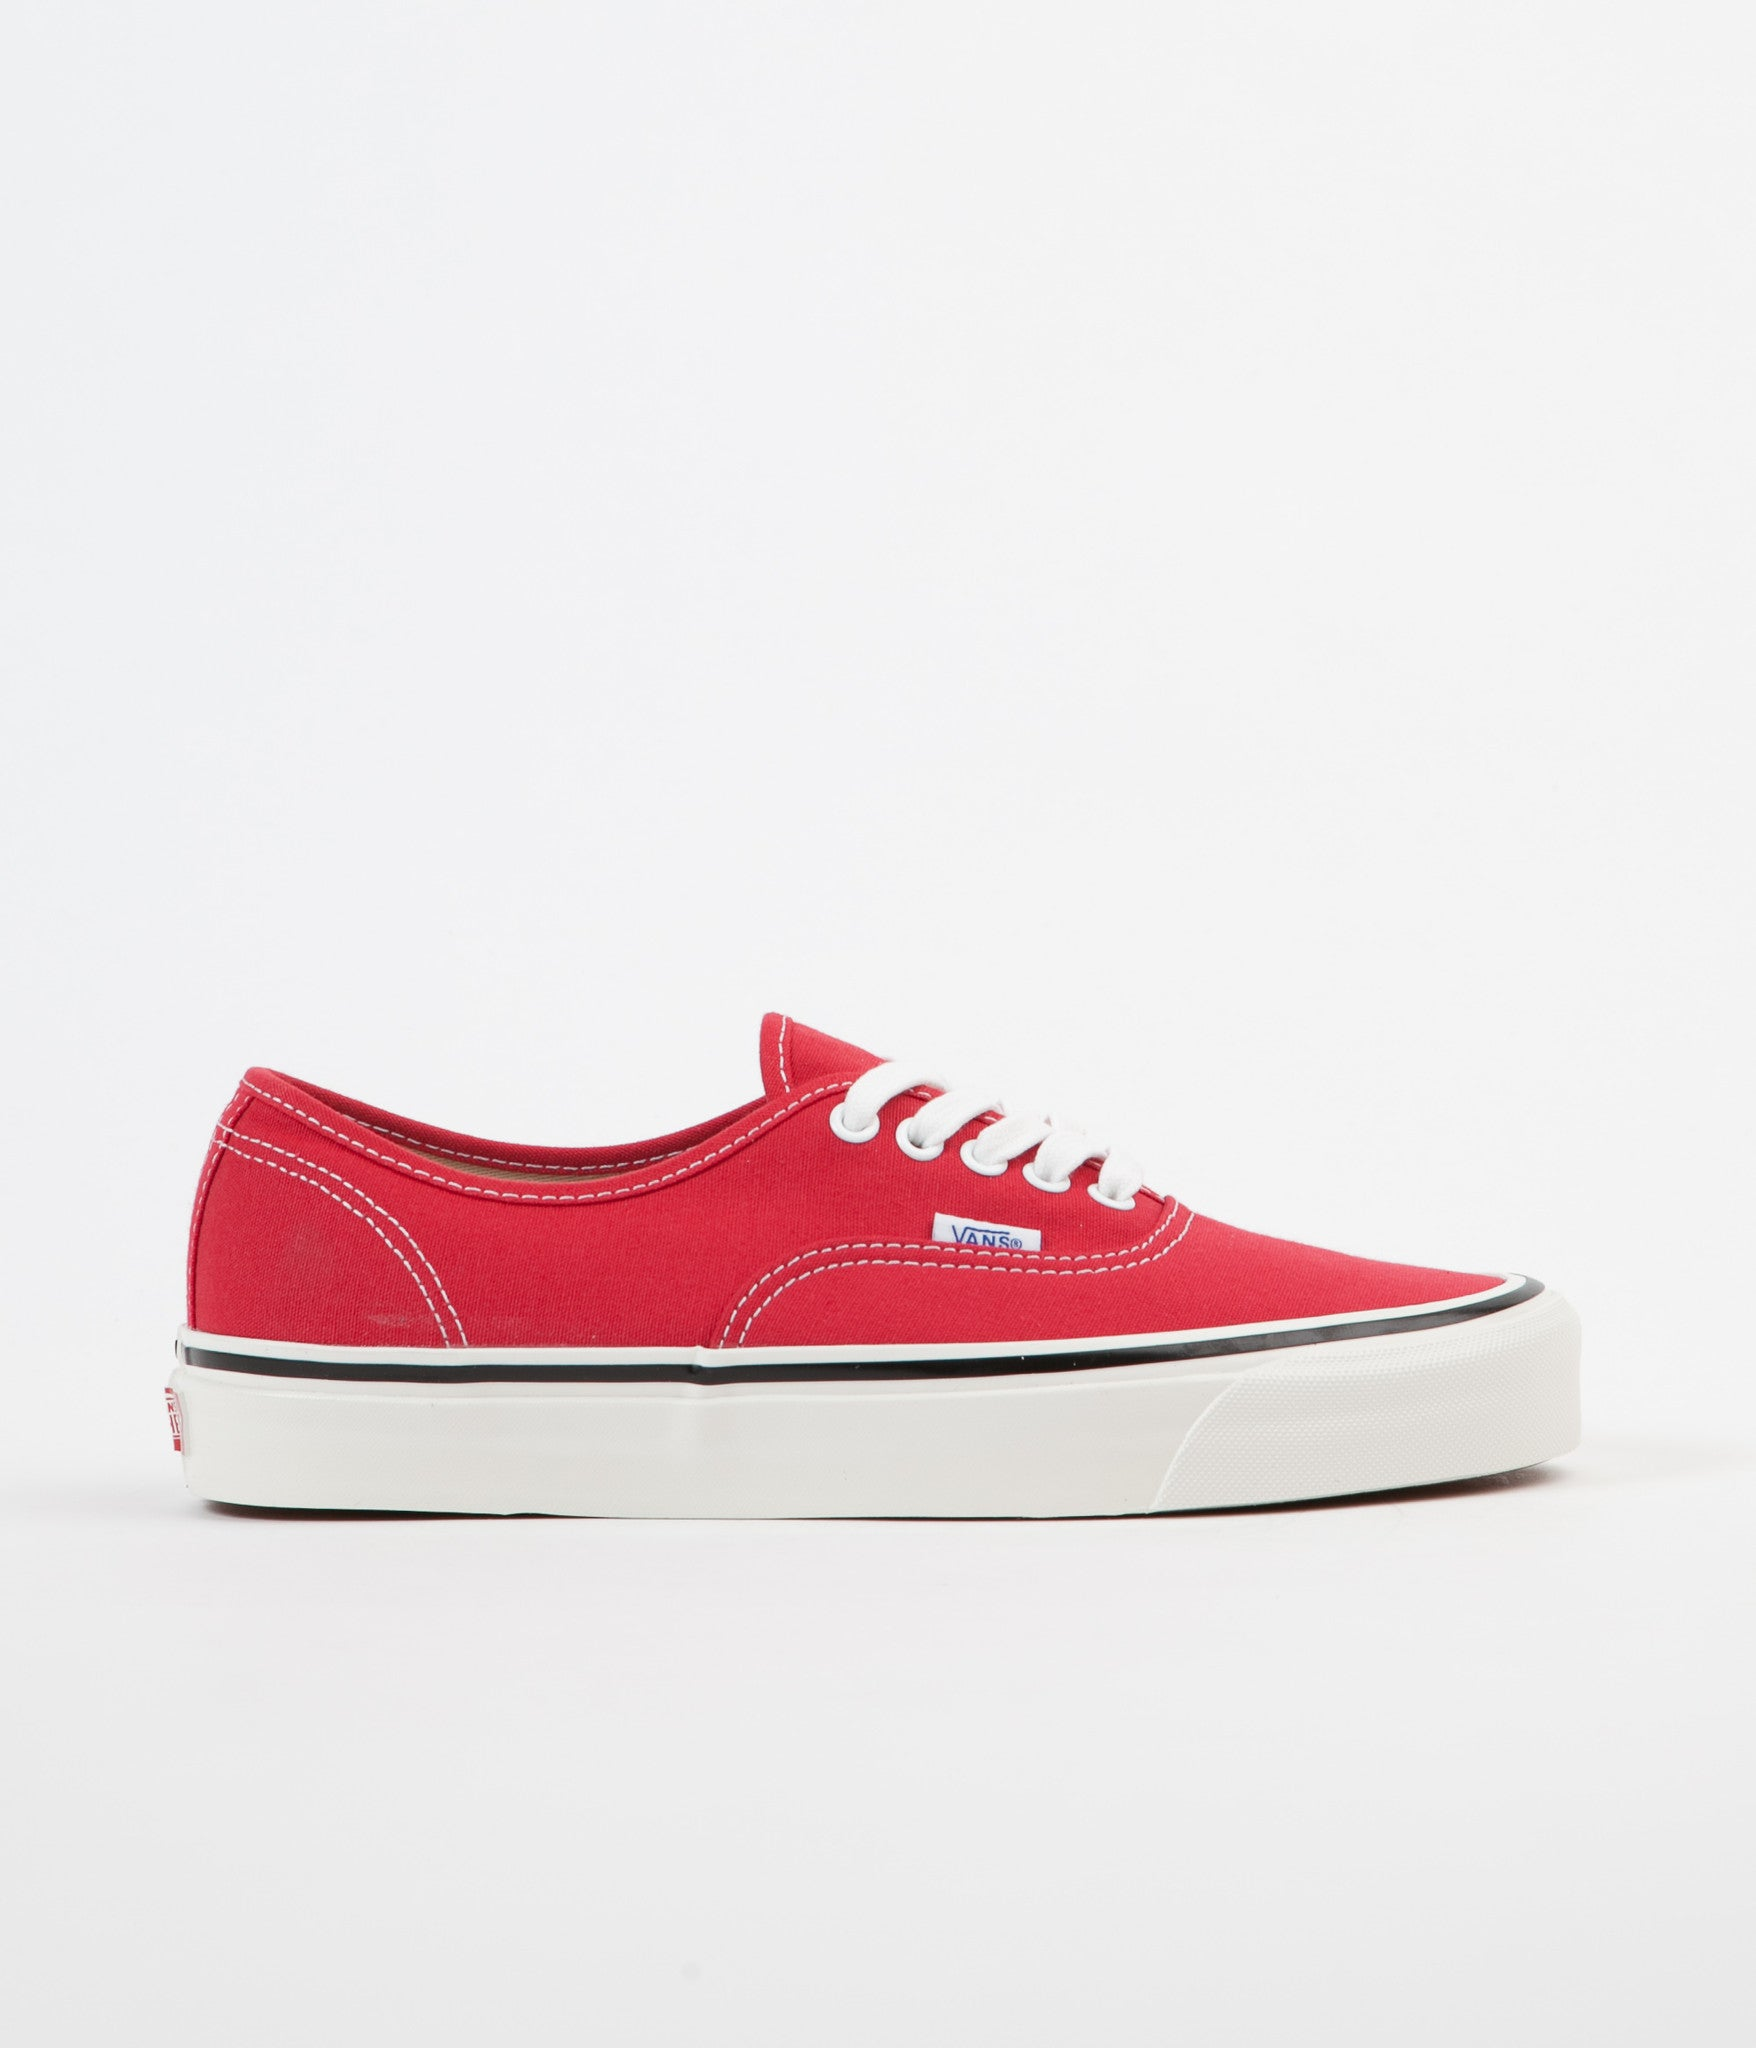 Vans Authentic 44 DX Anaheim Factory Shoes - Racing Red